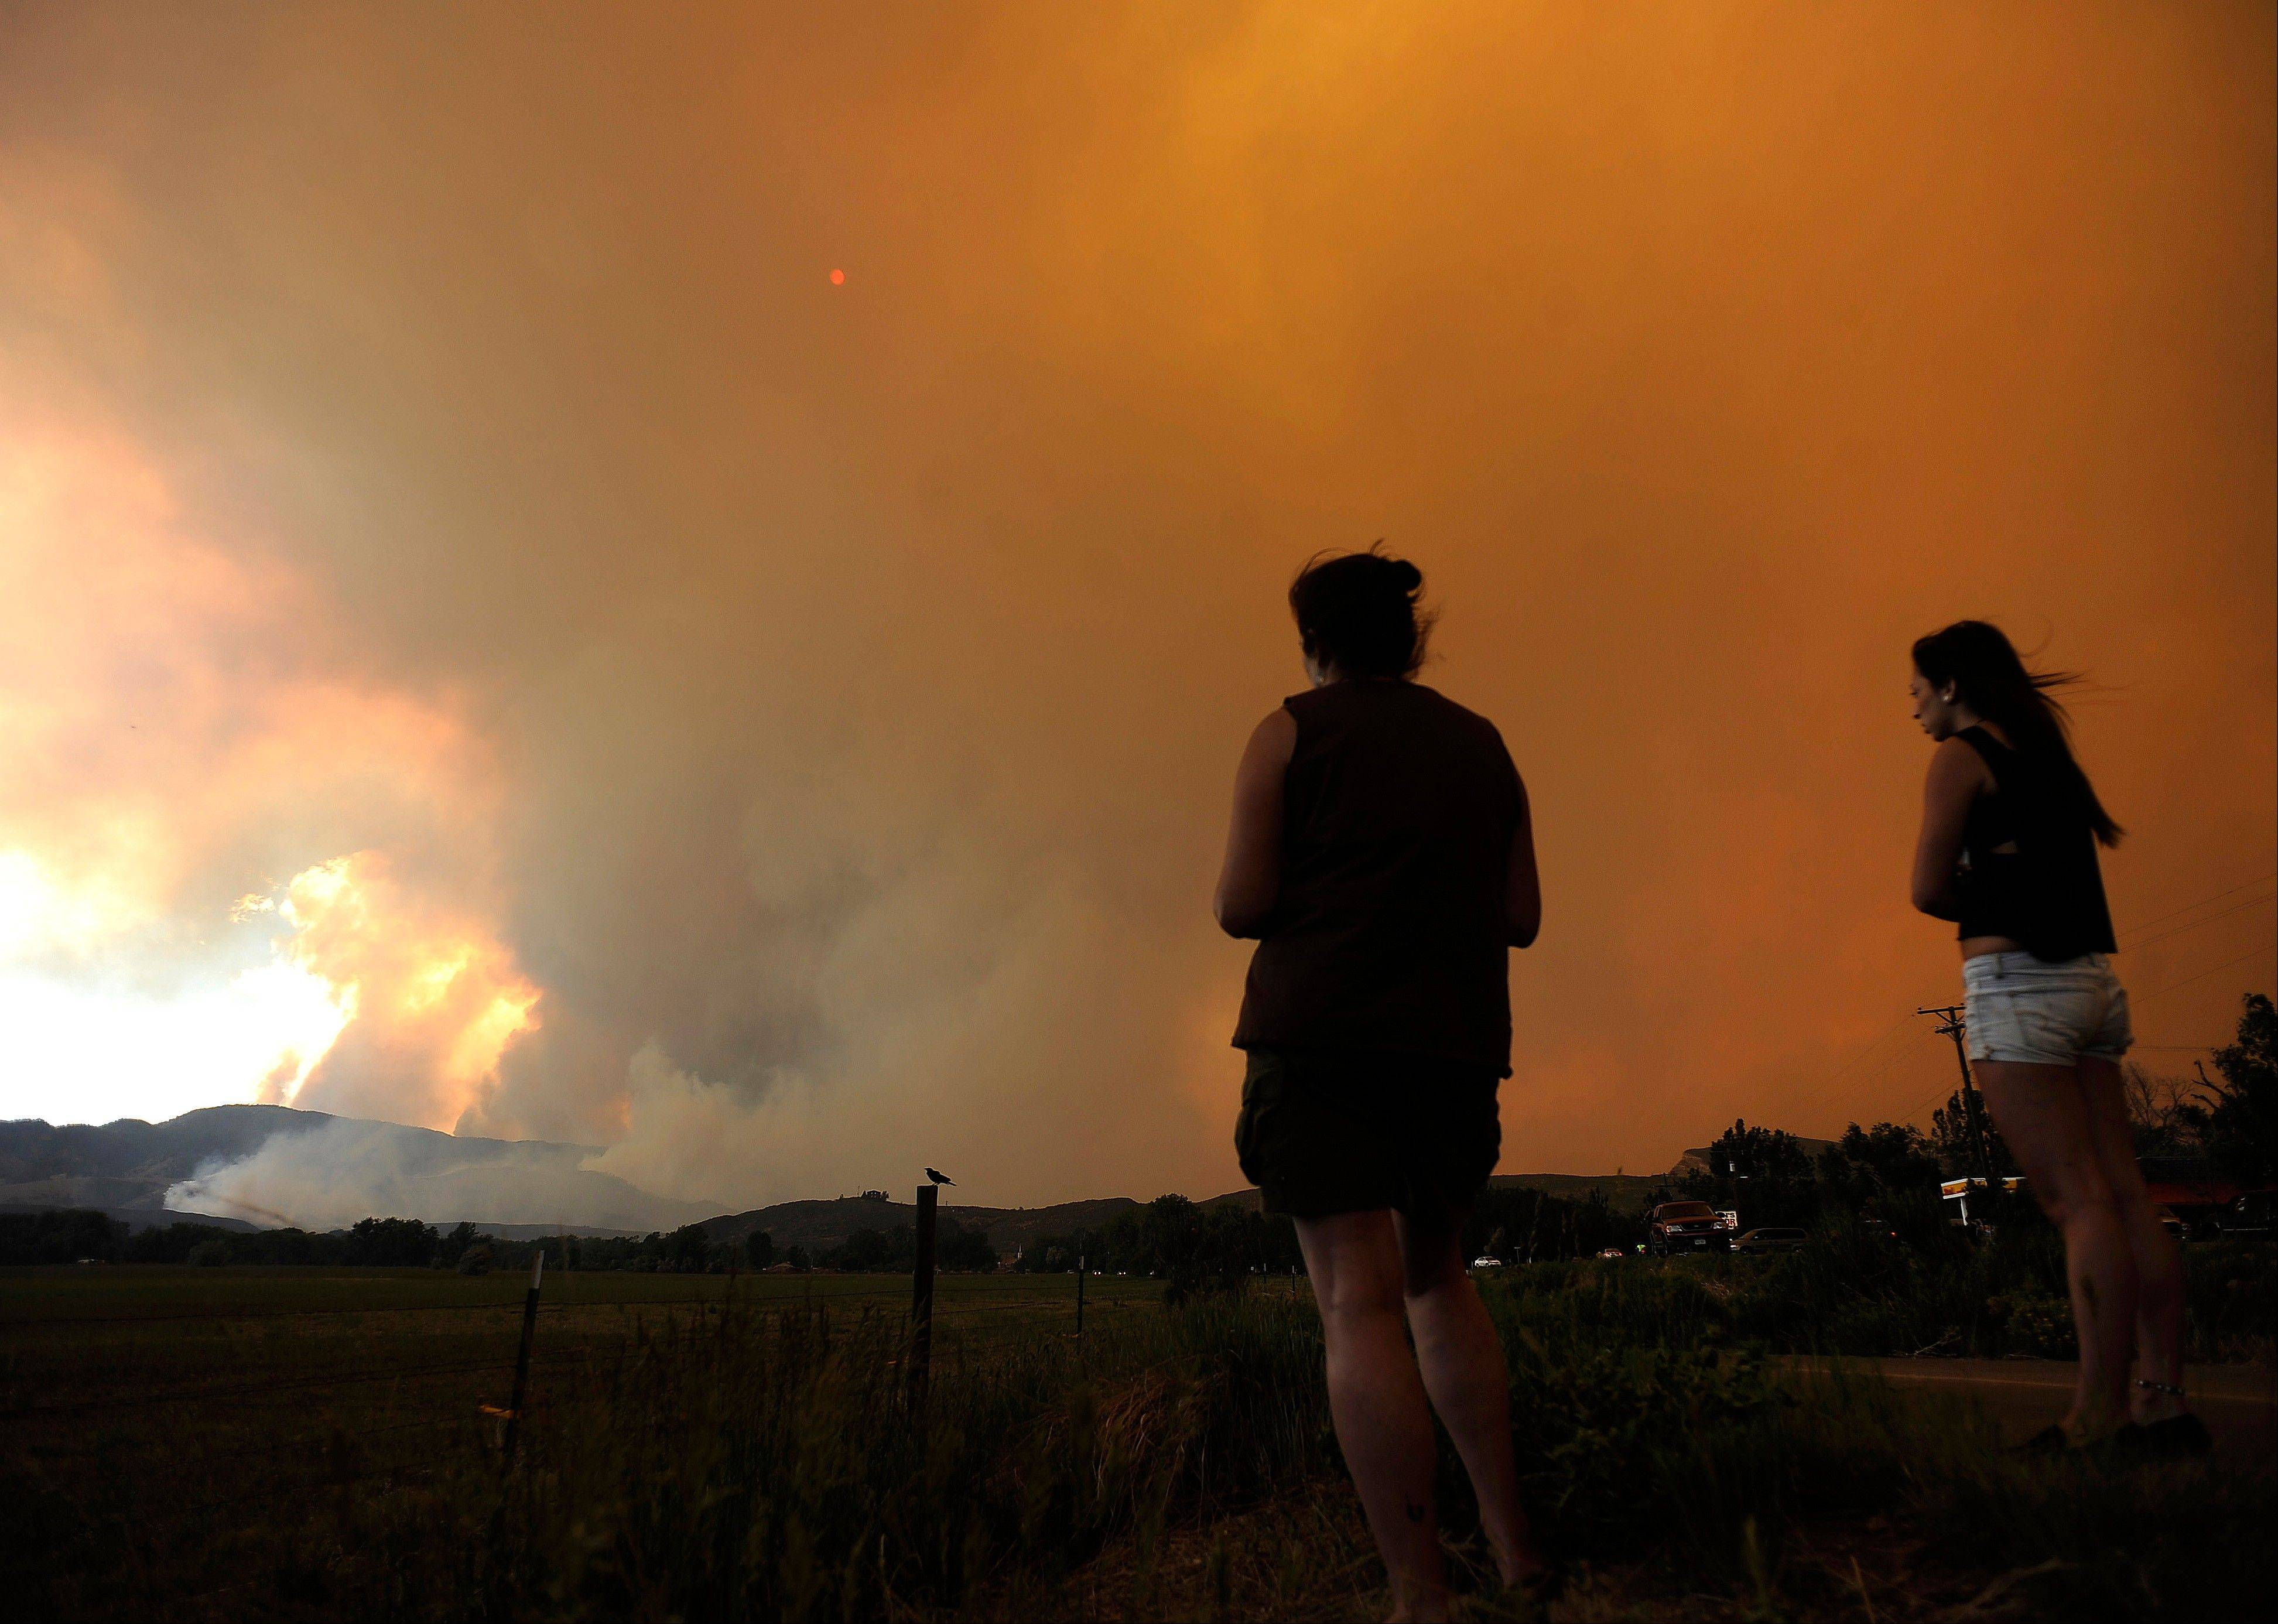 Donna Dundon, left, and Arianna Roupinian, of Fort Collins, Colo., watch a fire burning in a mountainous area about 15 miles west of Fort Collins, on Sunday, June 10, 2012. Firefighters on Sunday were fighting wildfires that have spread quickly in parched forests in Colorado and New Mexico, forcing hundreds of people from their homes and the evacuation of wolves from a sanctuary. The Colorado fire grew to 22 square miles within about a day of being reported and has destroyed or damaged 18 structures.